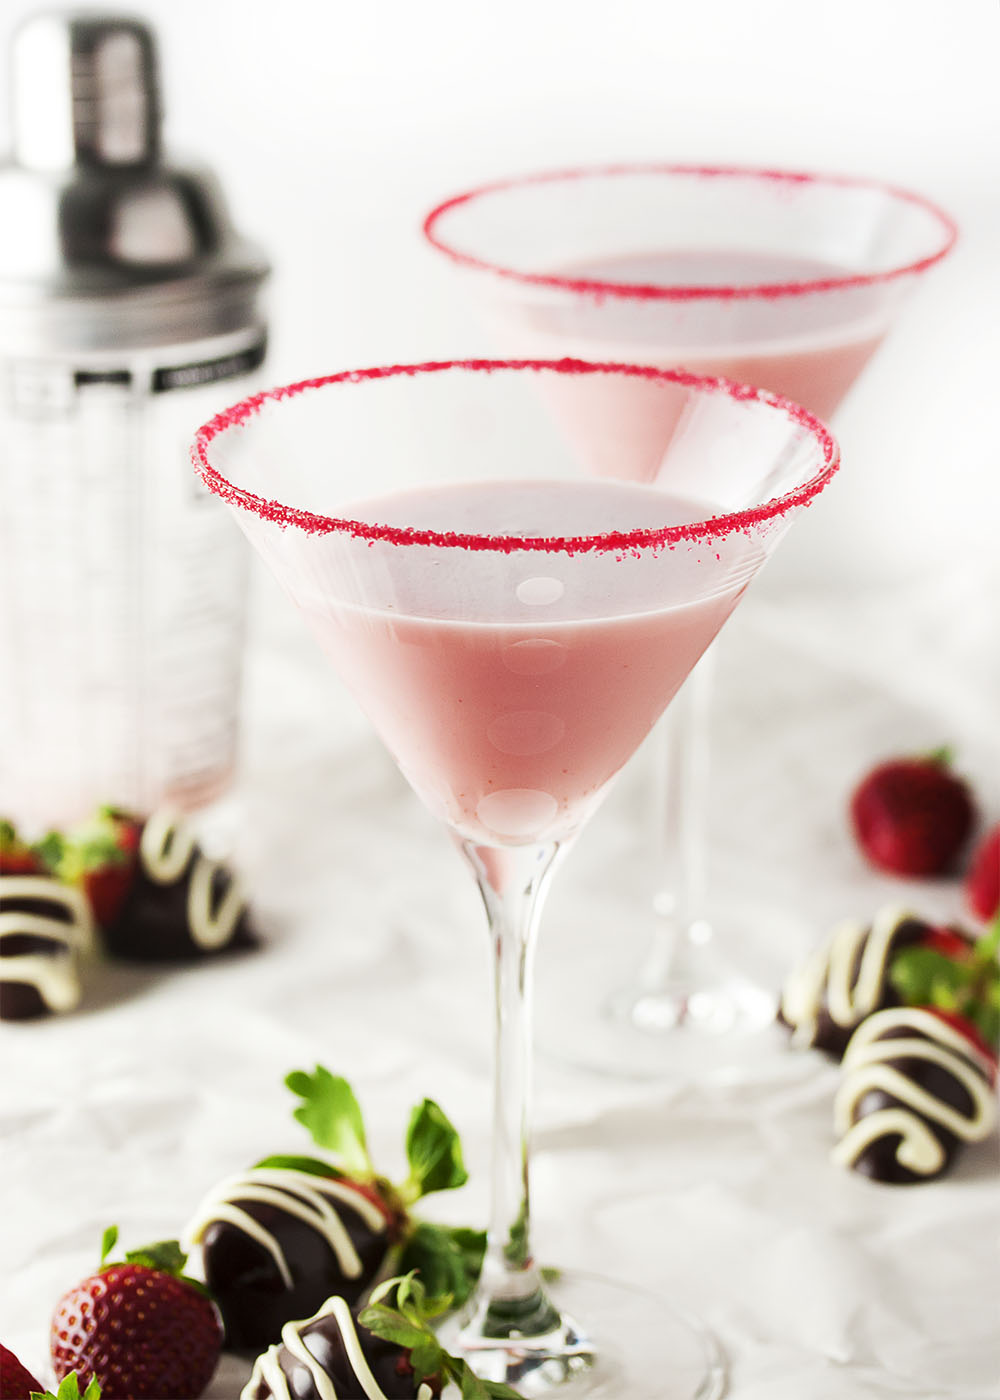 Chocolate Covered Strawberry Martini - Intense strawberry flavor is balanced with chocolate and a bit of cream which combine to make an amazing chocolate strawberry martini that is perfect for a romantic night in or a girl's night get-together. | justalittlebitofbacon.com